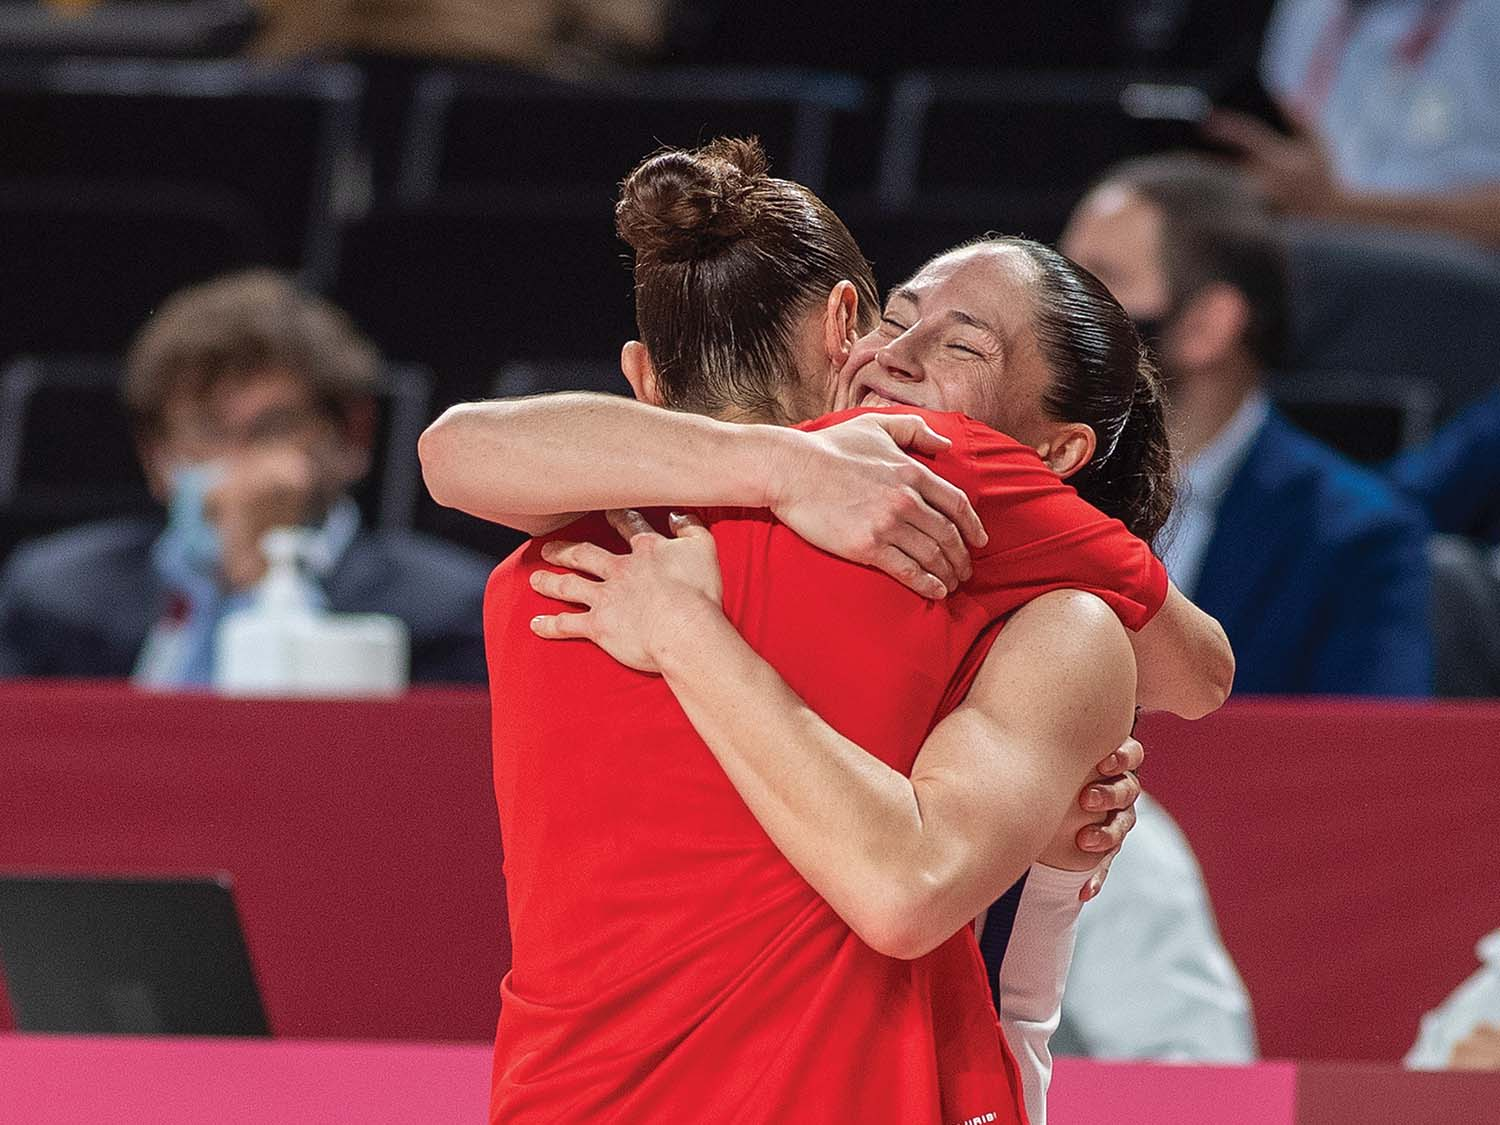 Five-time Olympic gold medalists Diana Taurasi and Sue Bird of the United States celebrate on the sideline after the team victory watched by team mates Brittney Griner #15 of the United States and Jewell Loyd #4 of the United States during the Japan V USA basketball final for women at the Saitama Super Arena during the Tokyo 2020 Summer Olympic Games on August 8, 2021 in Tokyo, Japan.